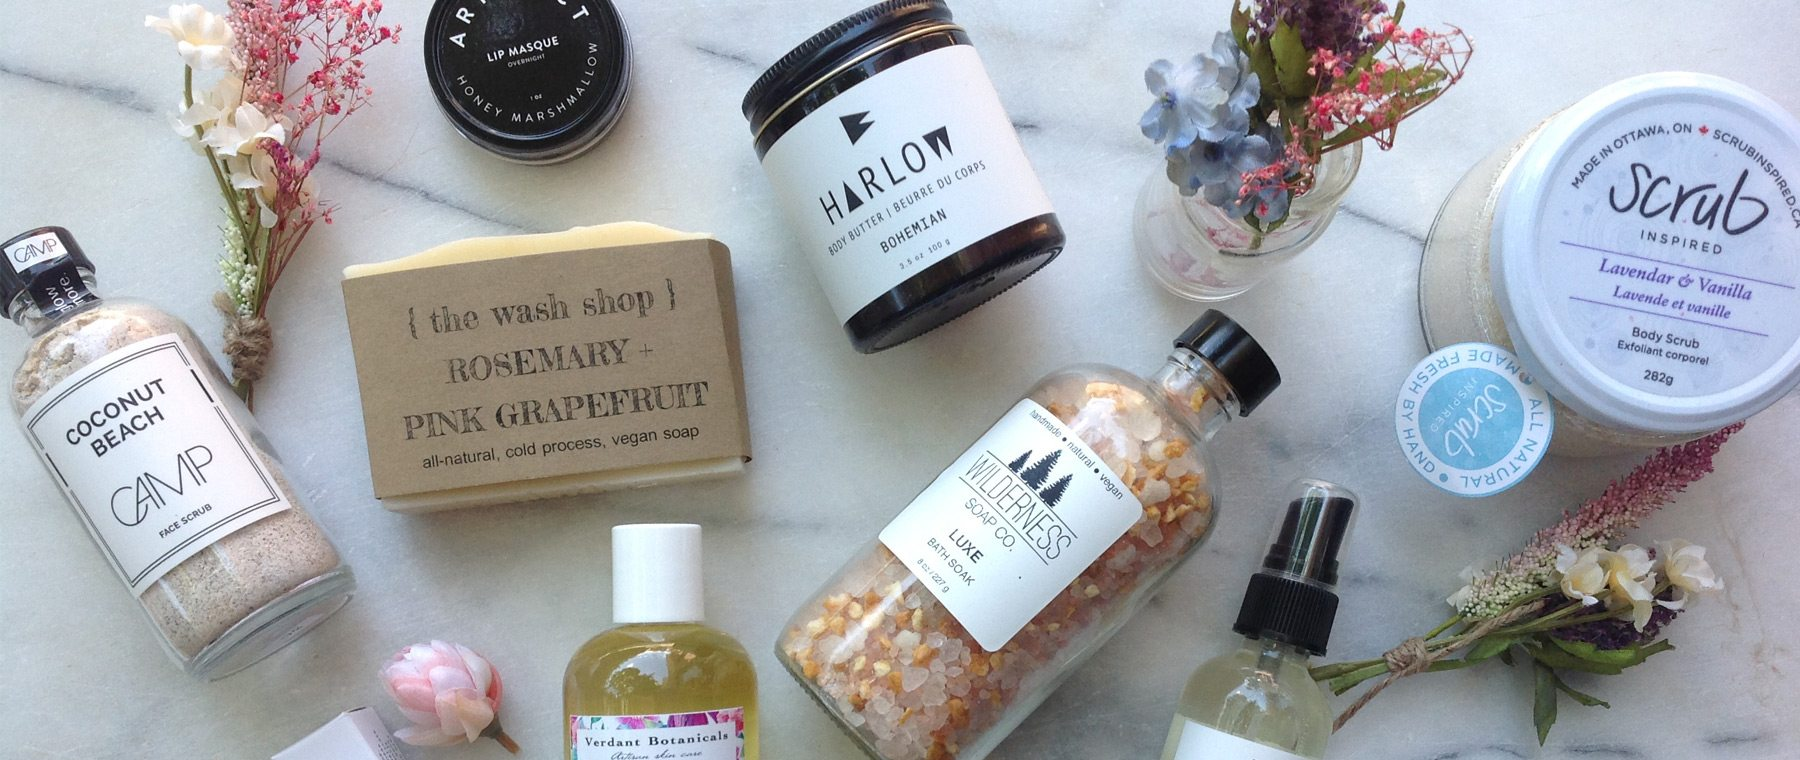 Pop into Vincent for Indie Apothecary pop-up's natural skincare products